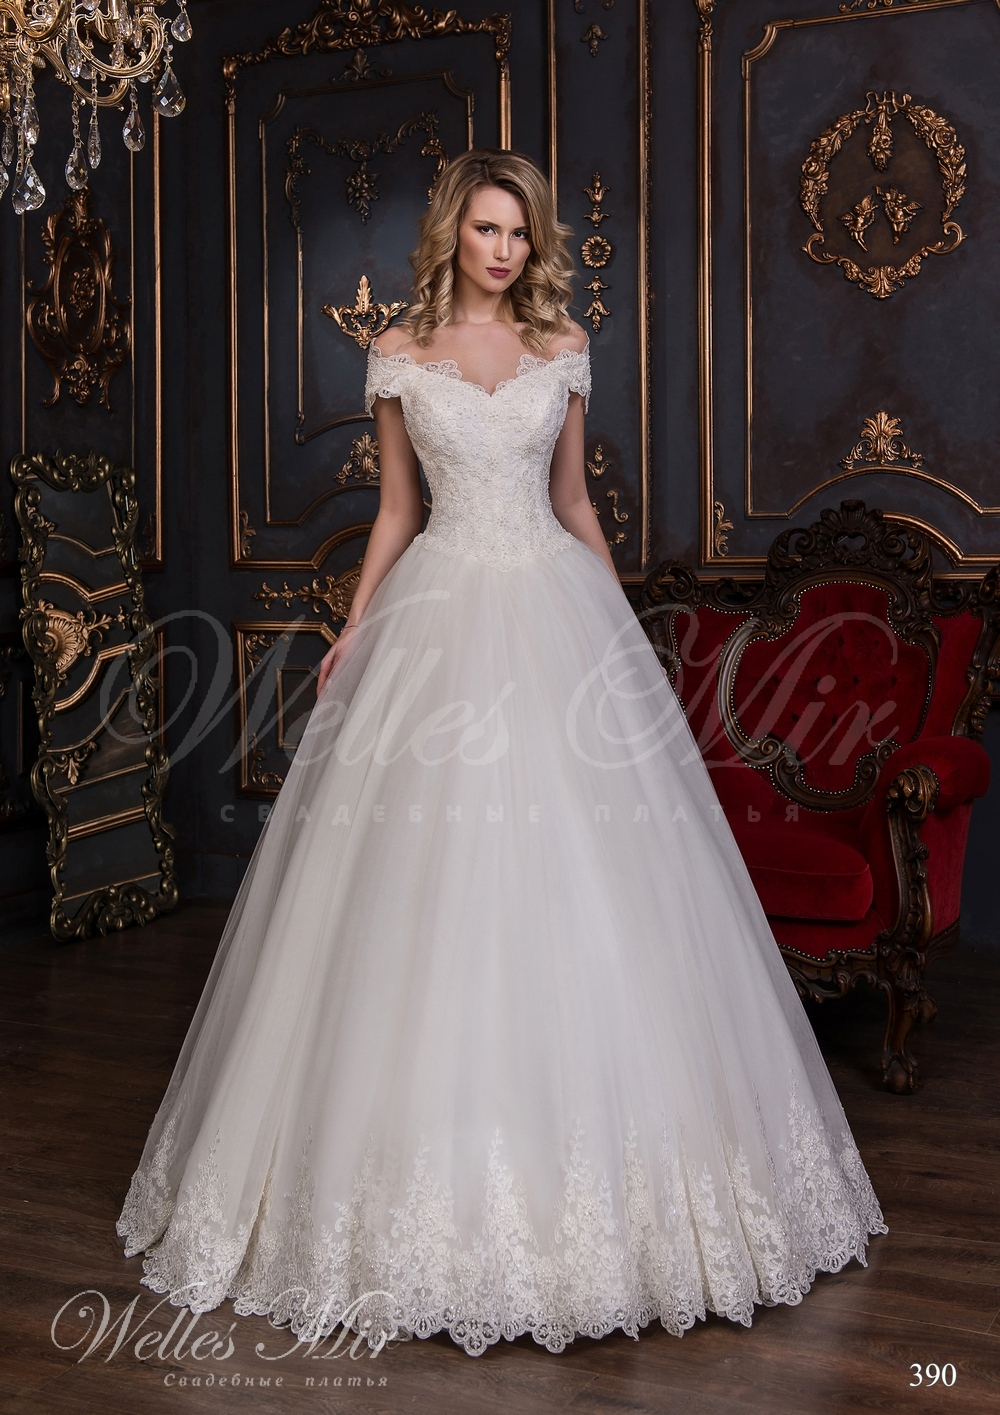 Wedding dress made of euromesh